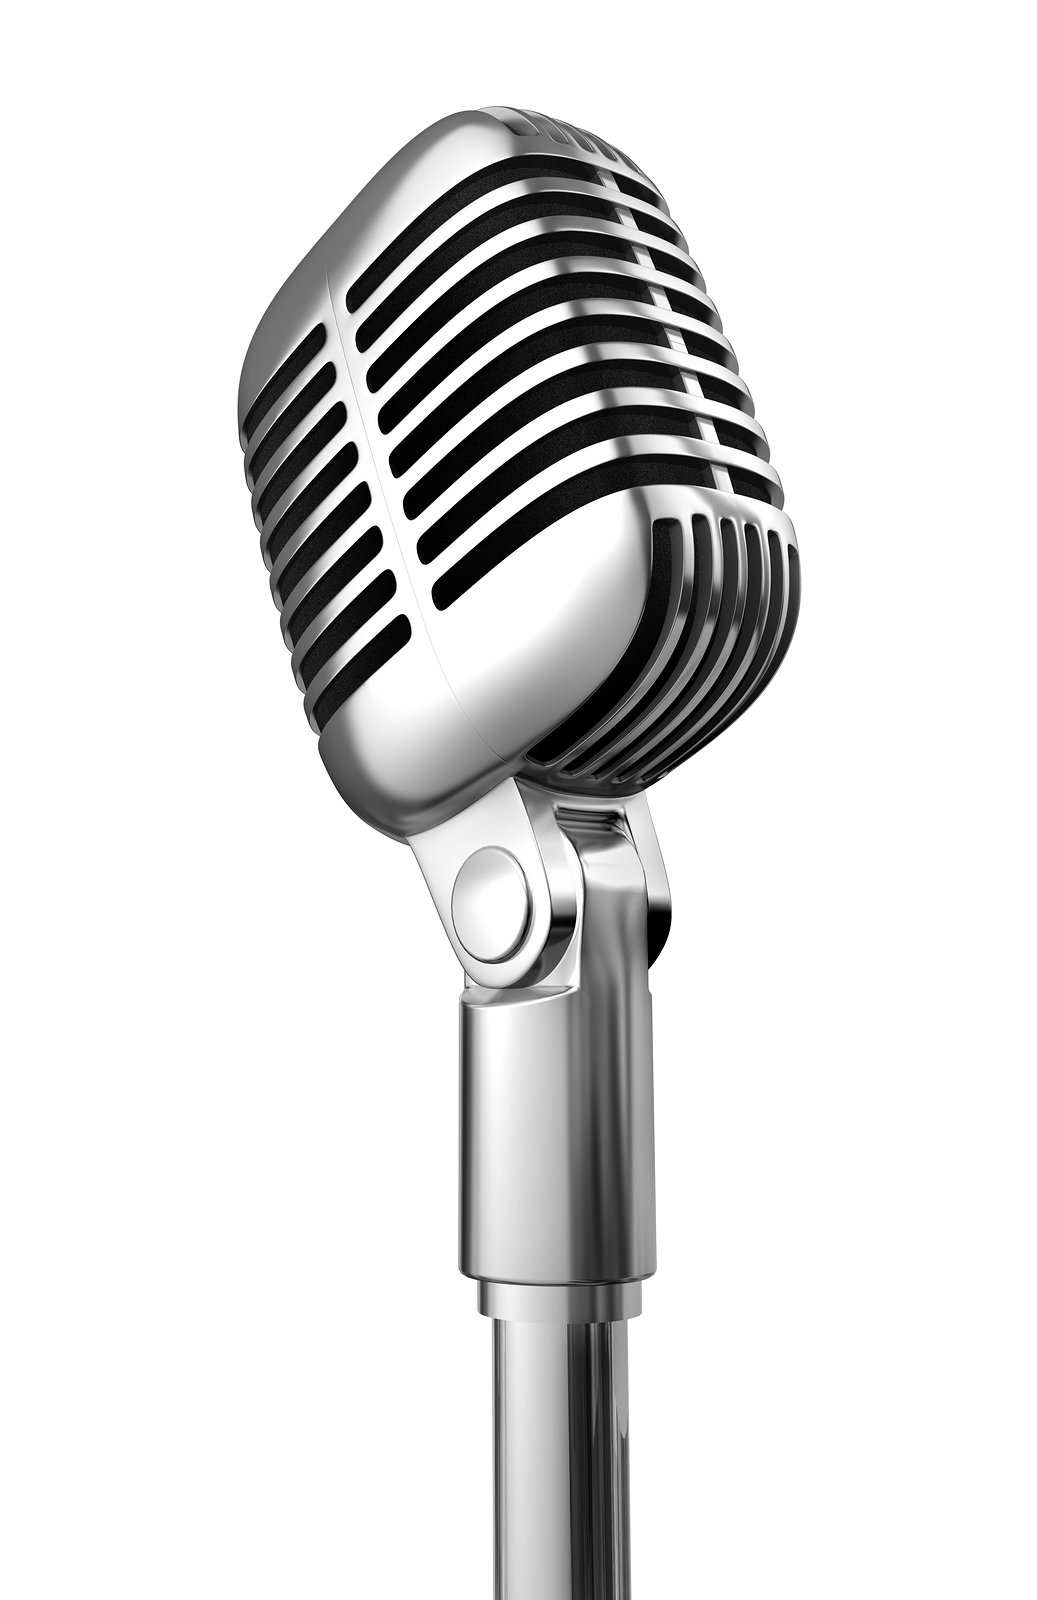 Microphone transparent images all png